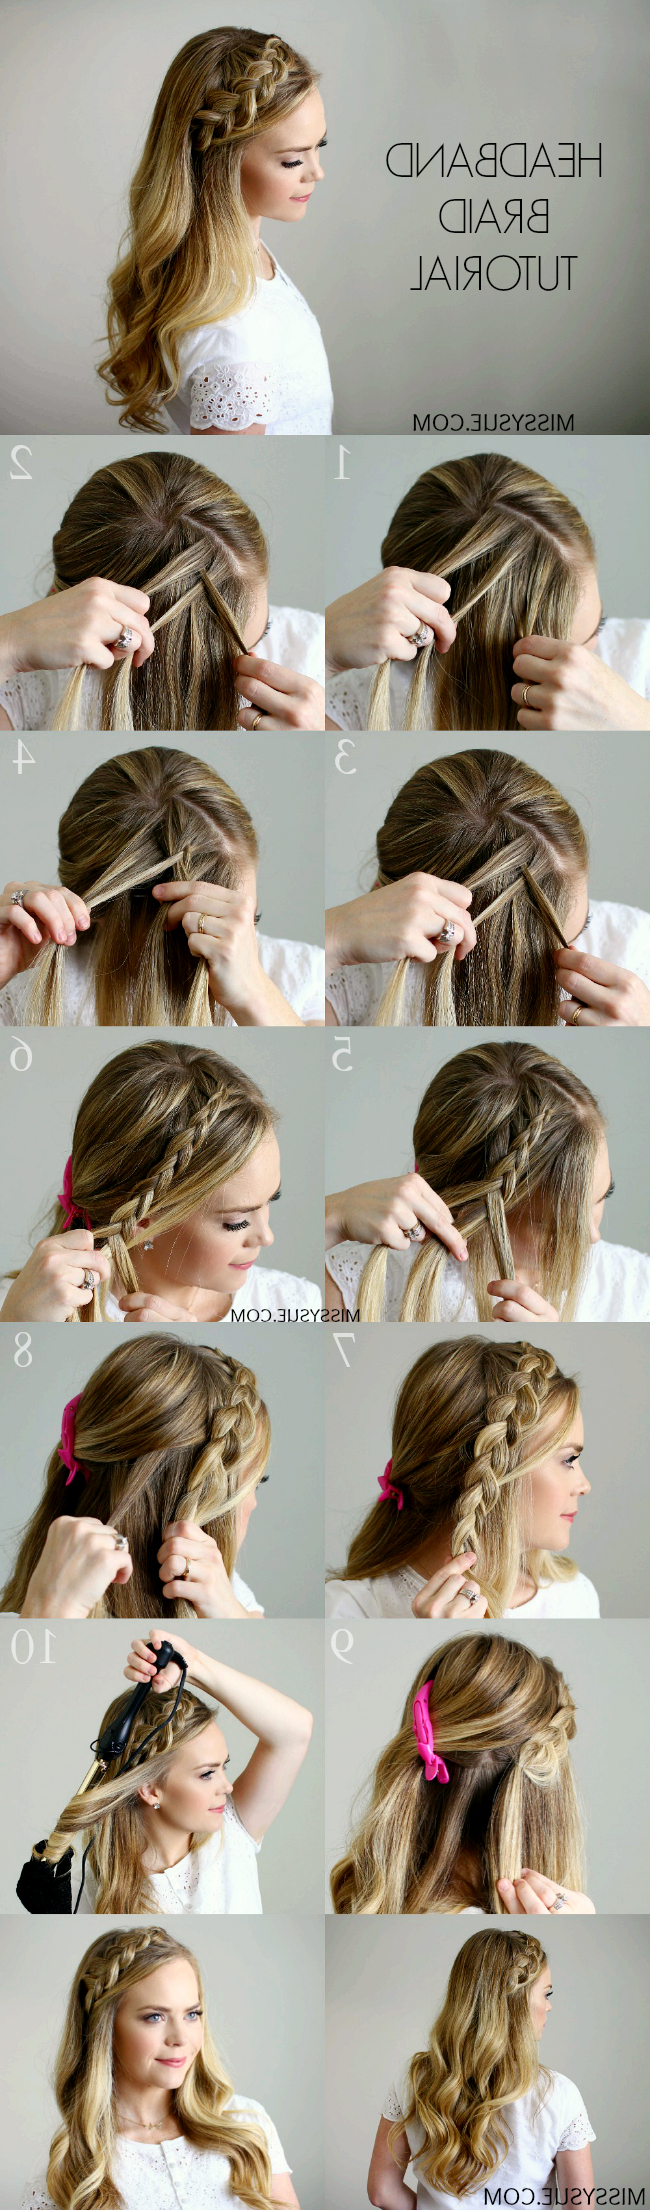 Best And Newest Headband Braid Hairstyles With Long Waves Throughout Headband Braid – Style Like Pro (View 8 of 20)